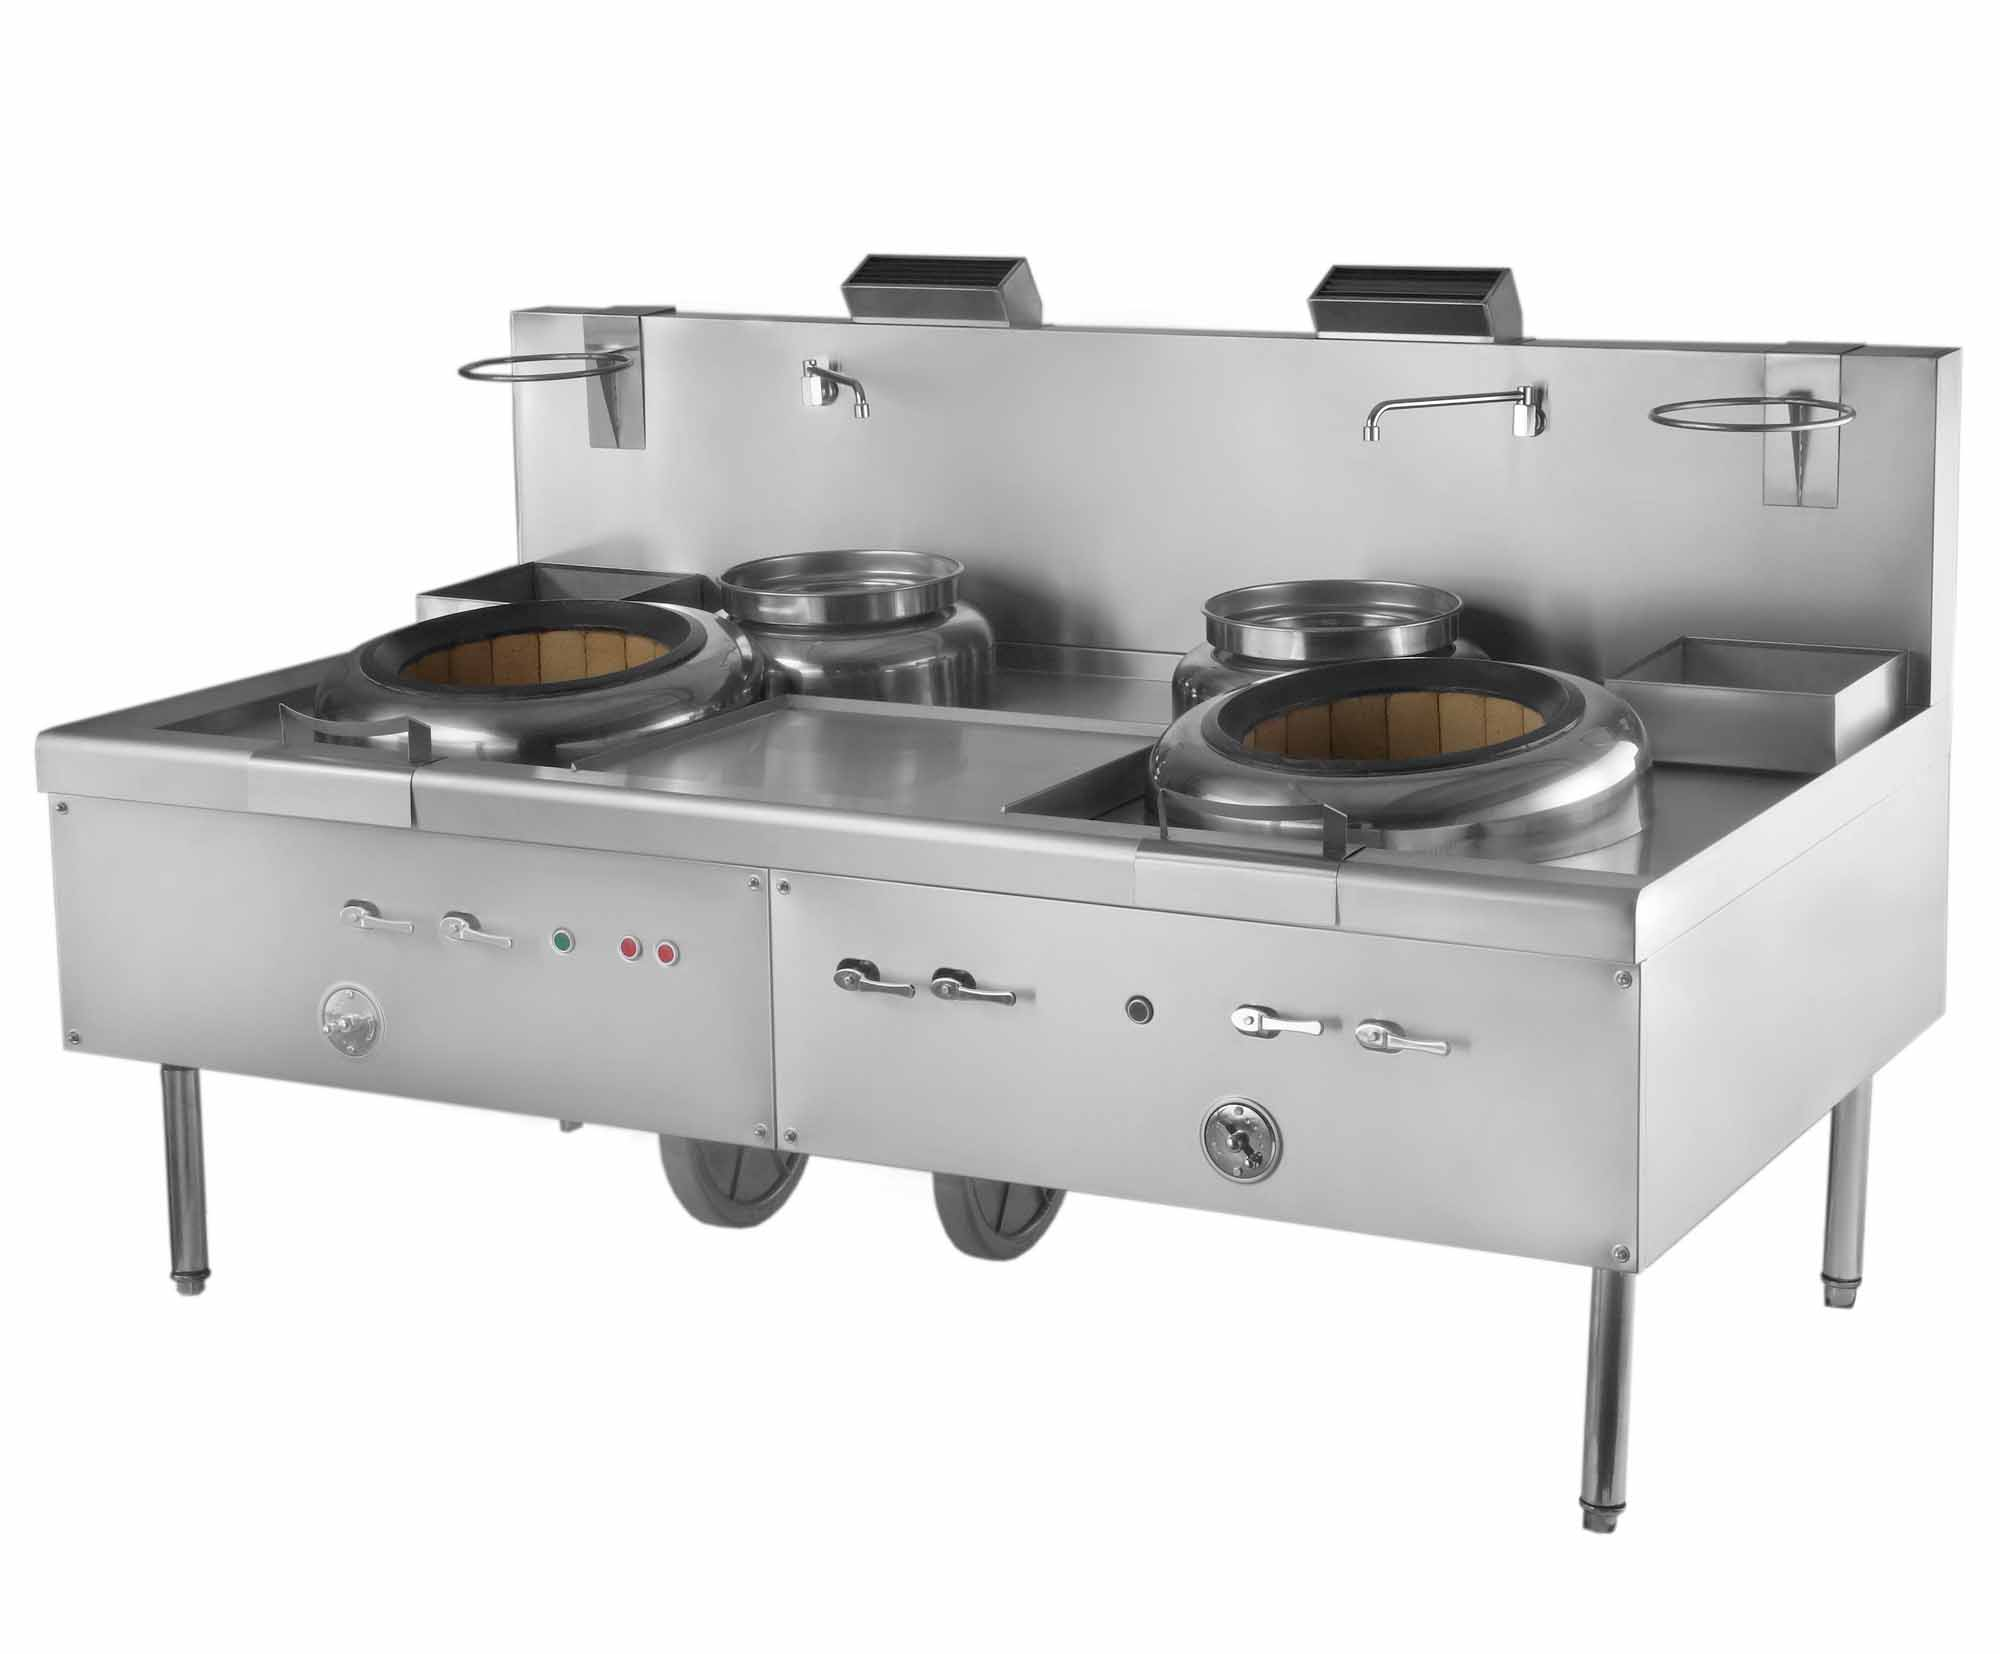 Two Chambers Hong Kong Style Blower Gas Wok Range and 2 Soup Pots – 360,000 BTU, NSF